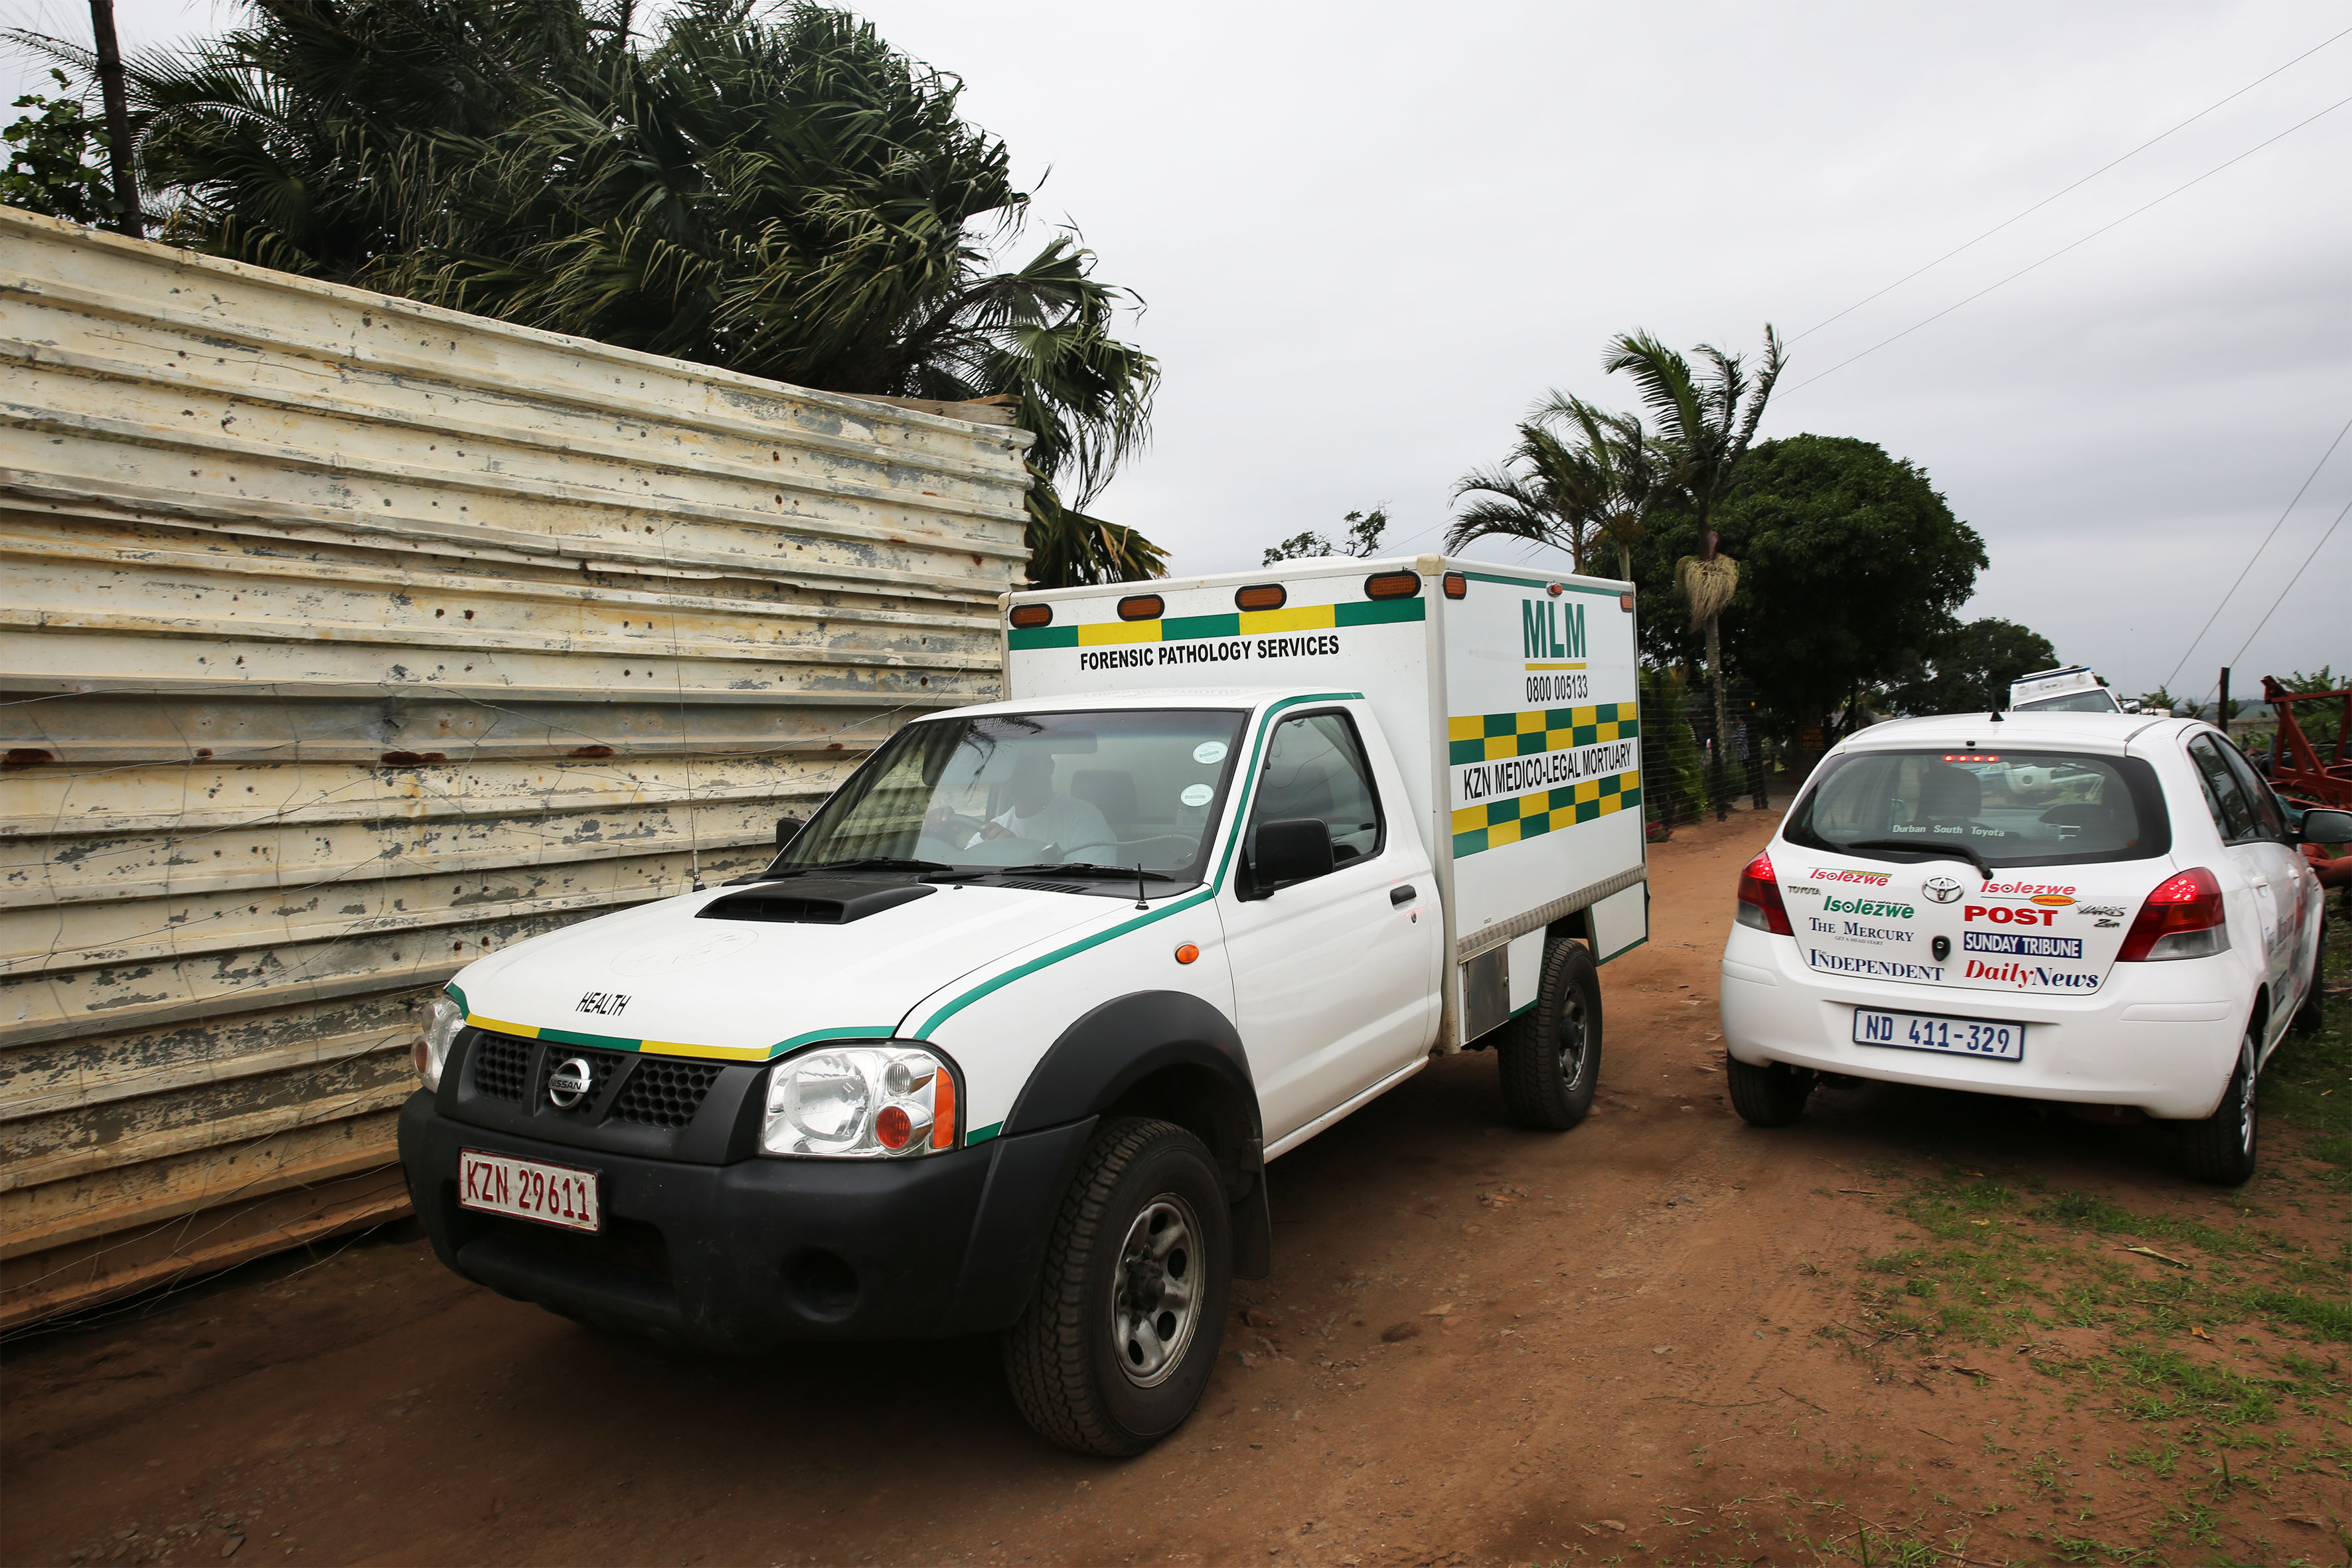 FARMER KILLED AFTER AFIVE HOUR ORDEAL IN KZN